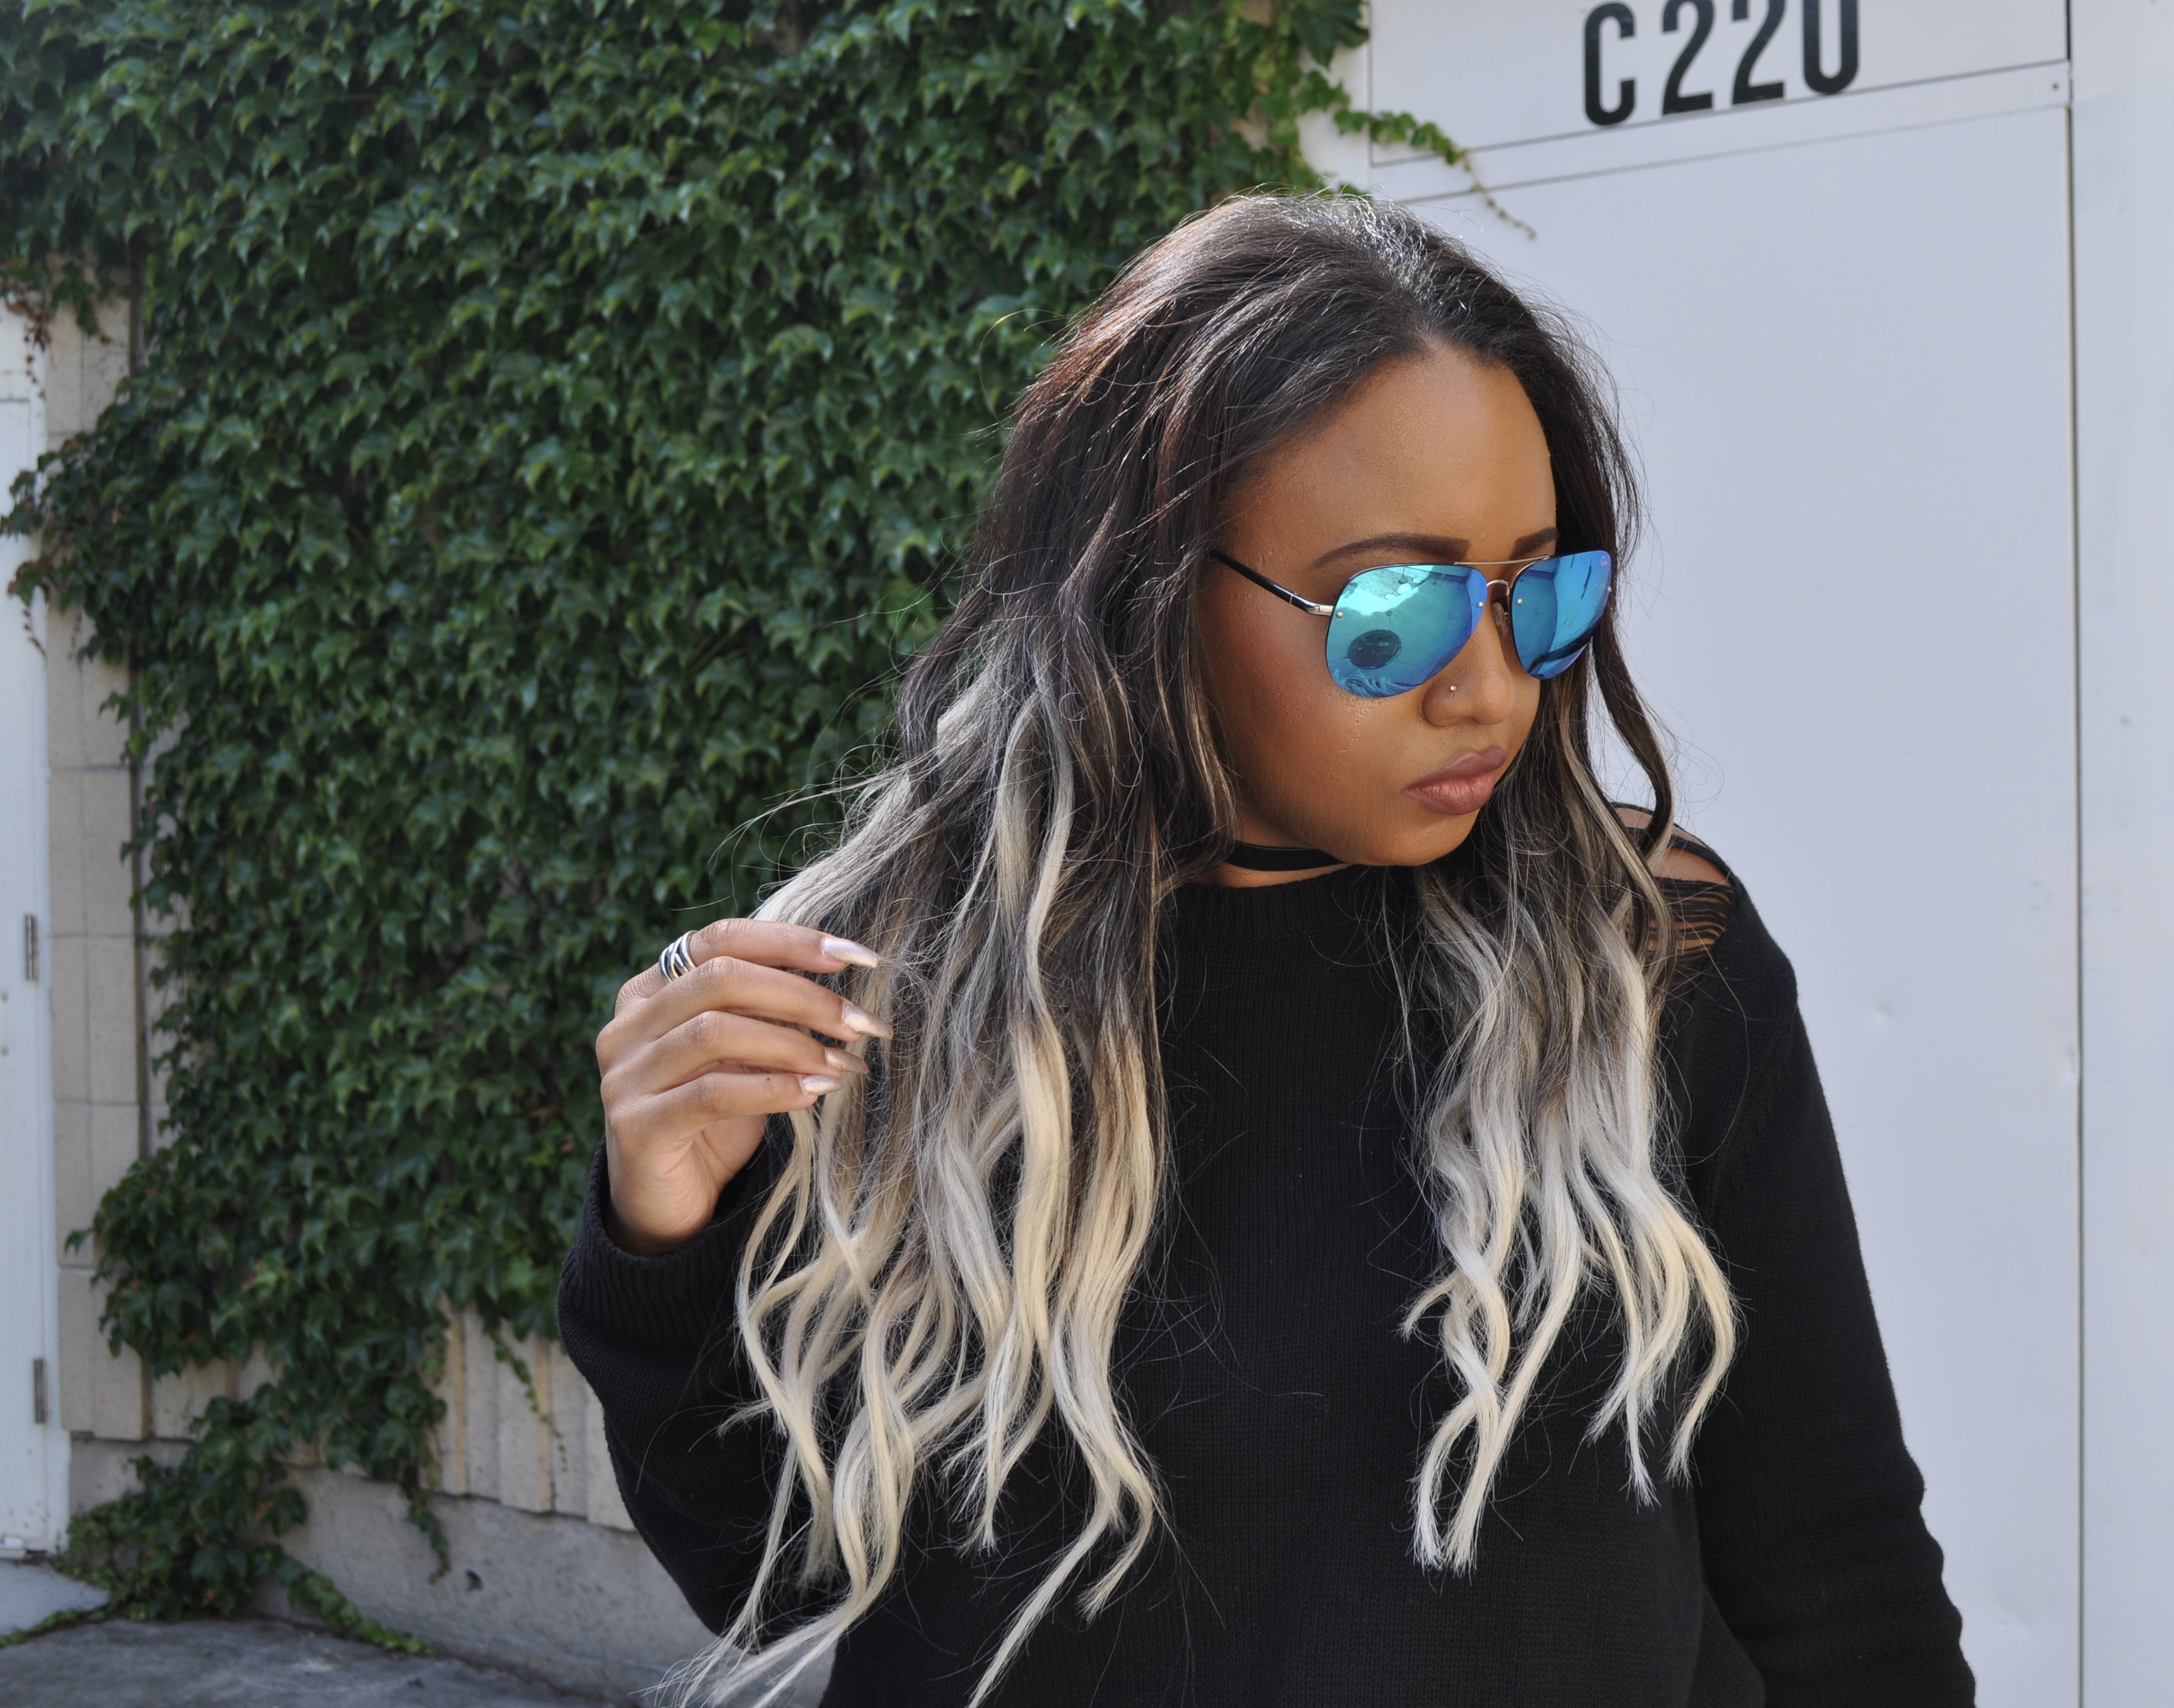 Bellami clip in hair extensions ombre 2 platinum review the finally i can share my true thoughts on my bellami clip in hair extensions in 2platinum ombre 160g in 20 inches my favorite color thus far pmusecretfo Gallery